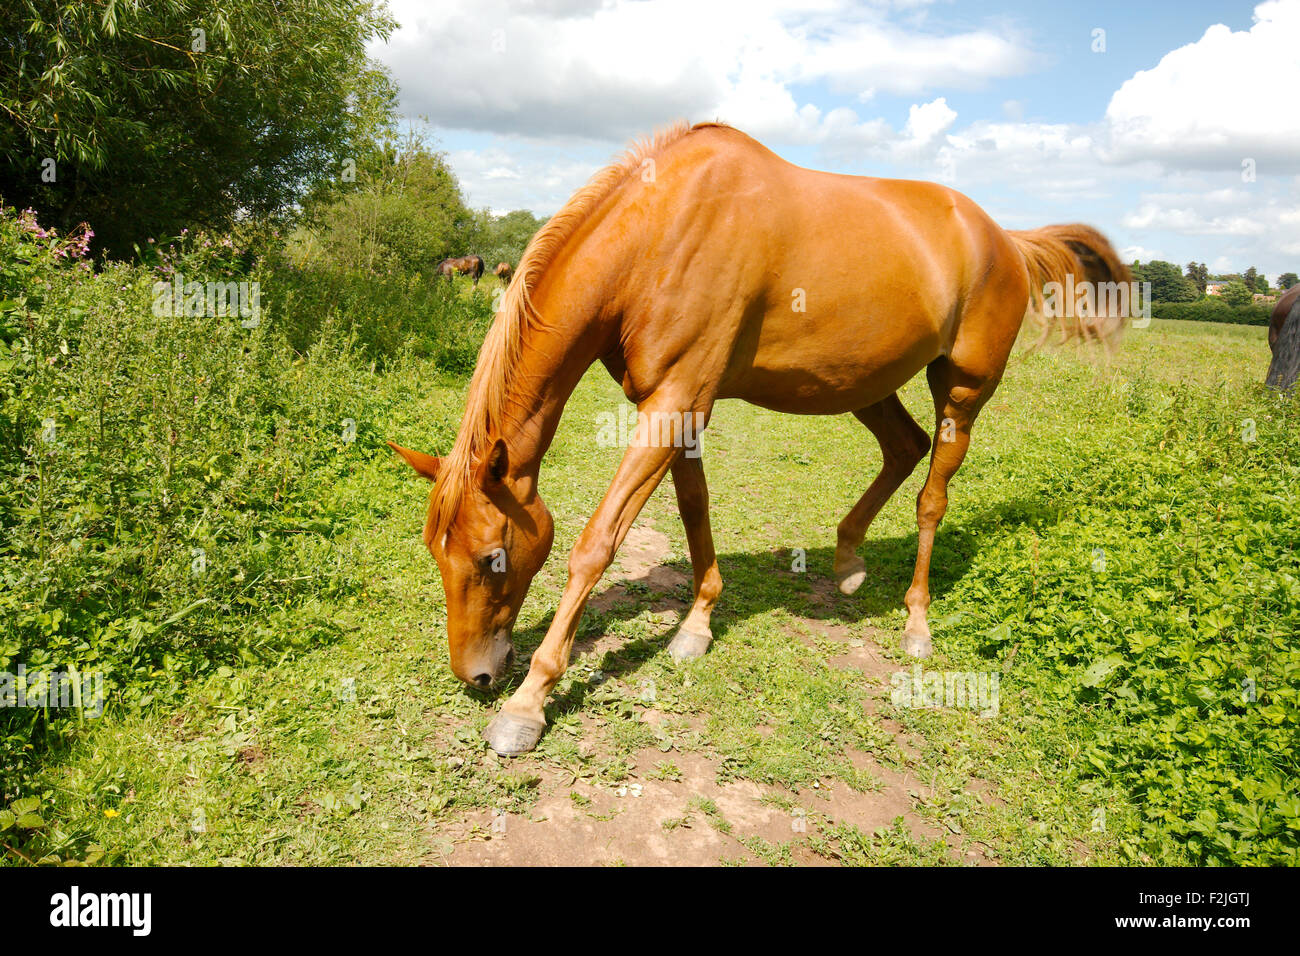 Strawberry Roan Stock Photos & Strawberry Roan Stock ... - photo#48